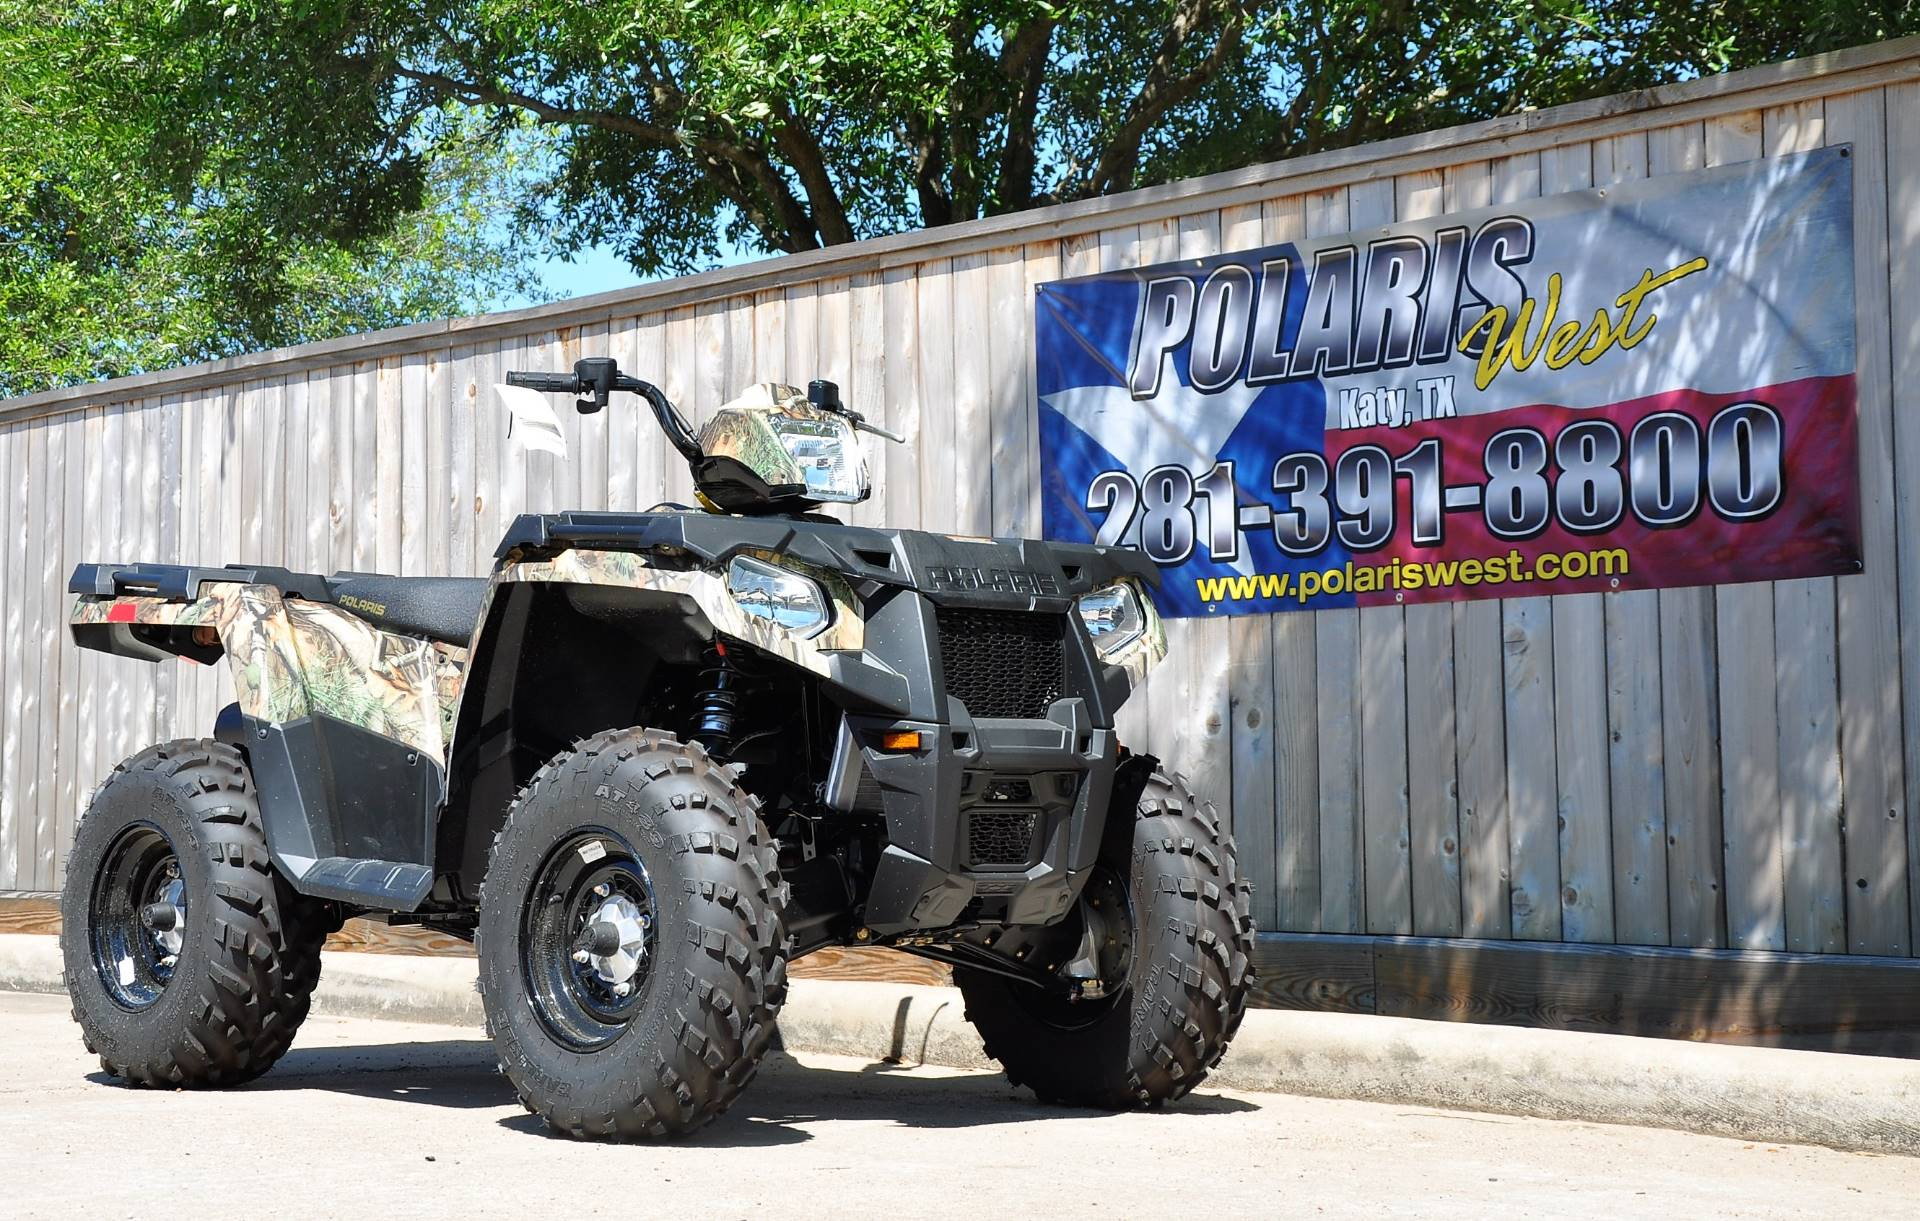 2019 Polaris Sportsman 570 Camo in Katy, Texas